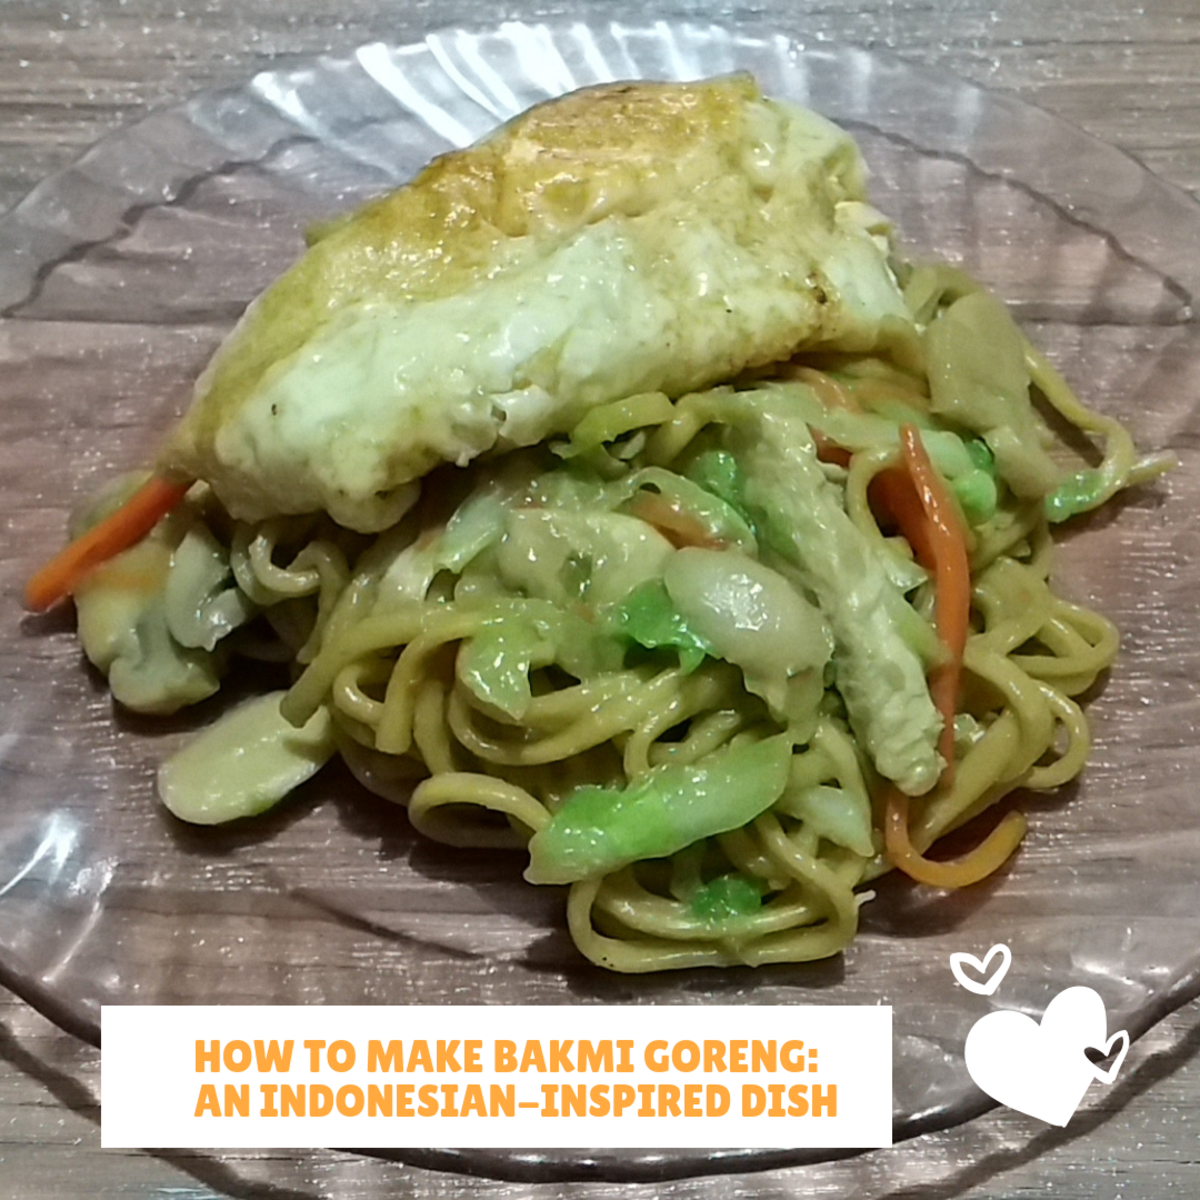 Learn how to make bakmi goreng with this easy-to-follow recipe.